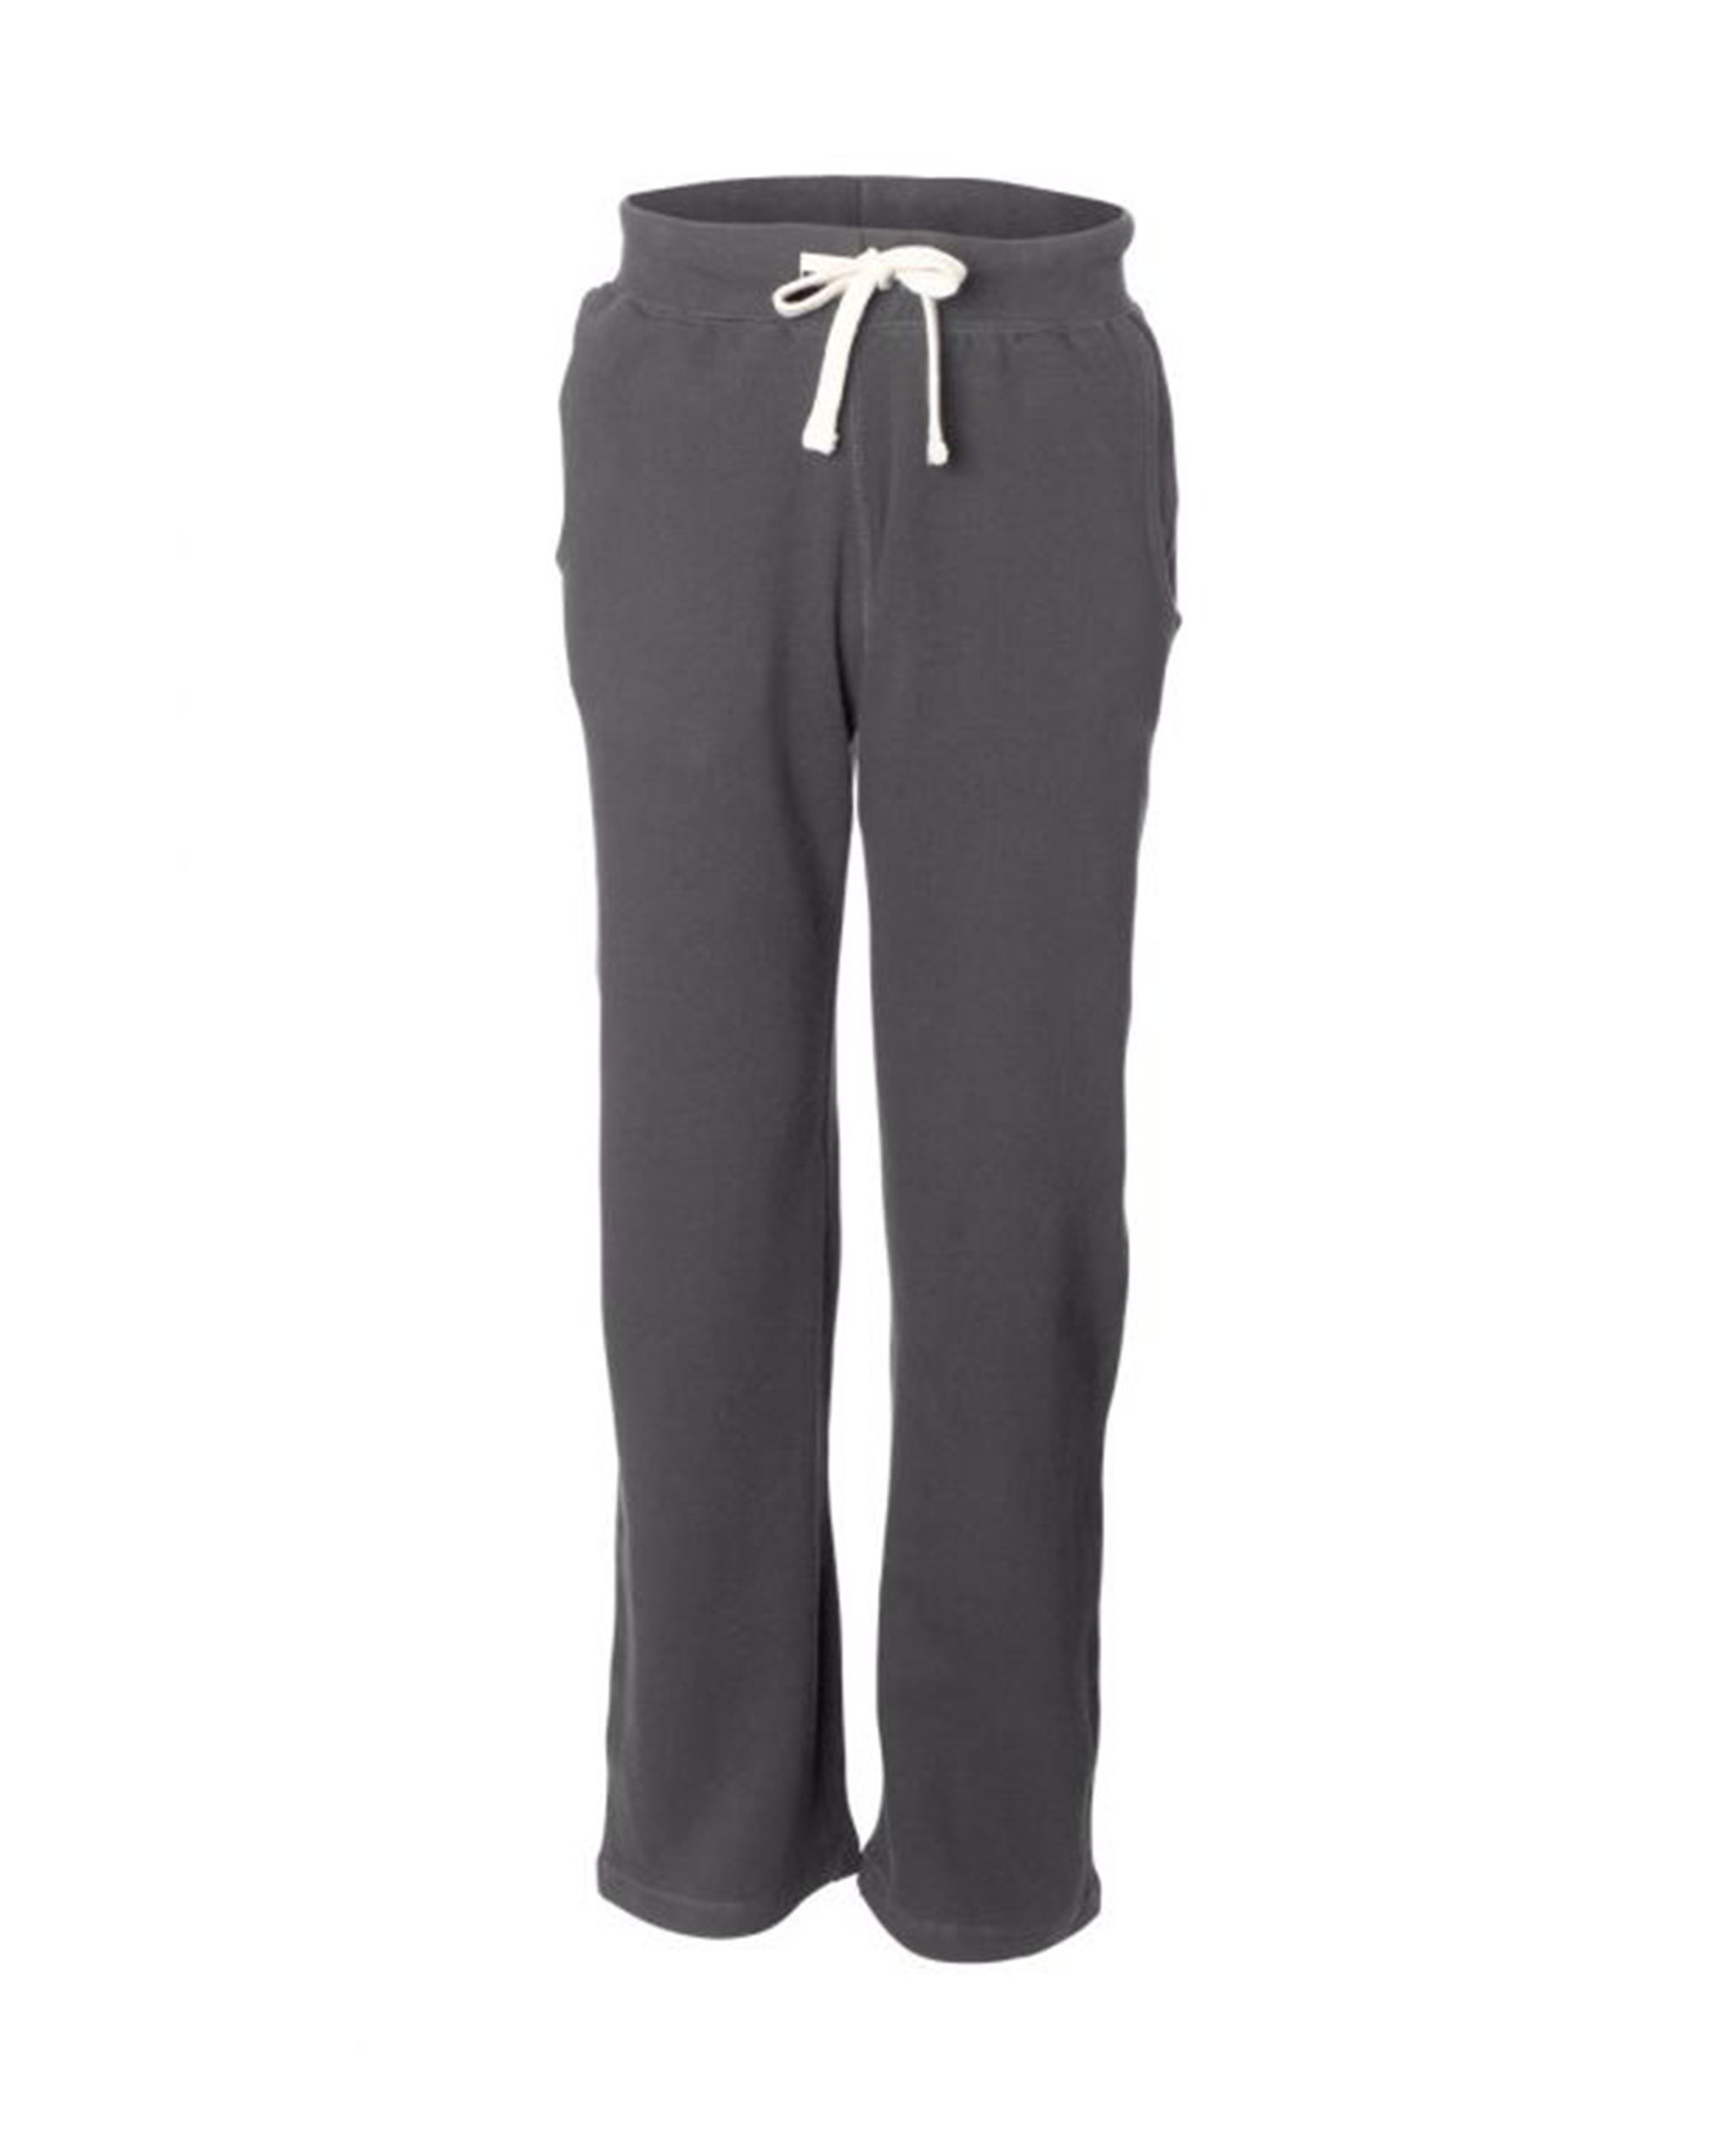 Adult Relaxed Pants in Graphite - Pants - Weatherproof - BRANMA